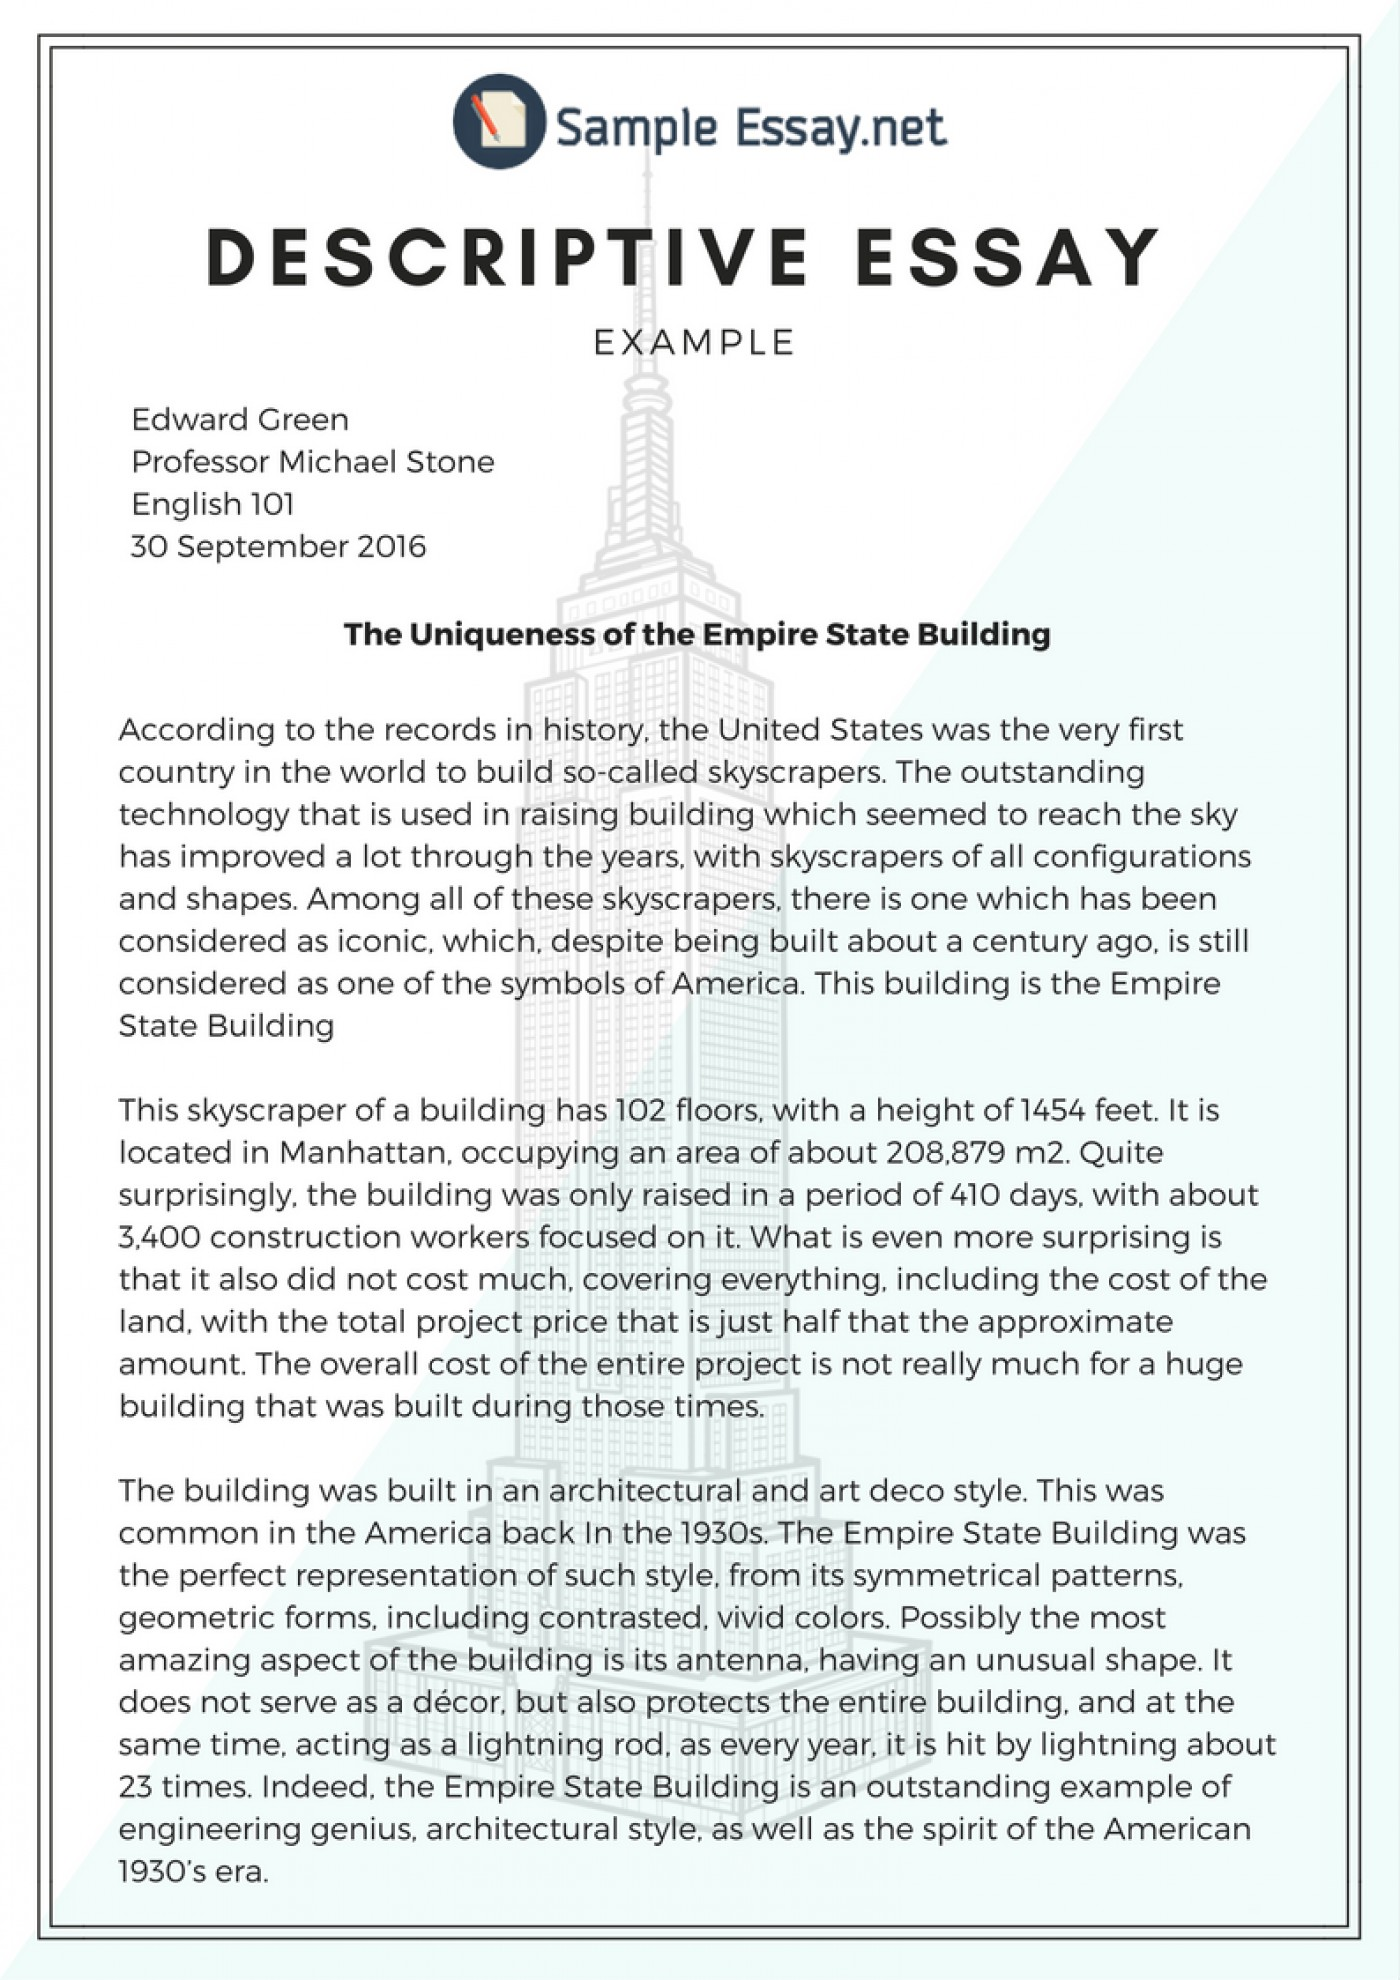 024 essay example of descriptive examples paragraphs and